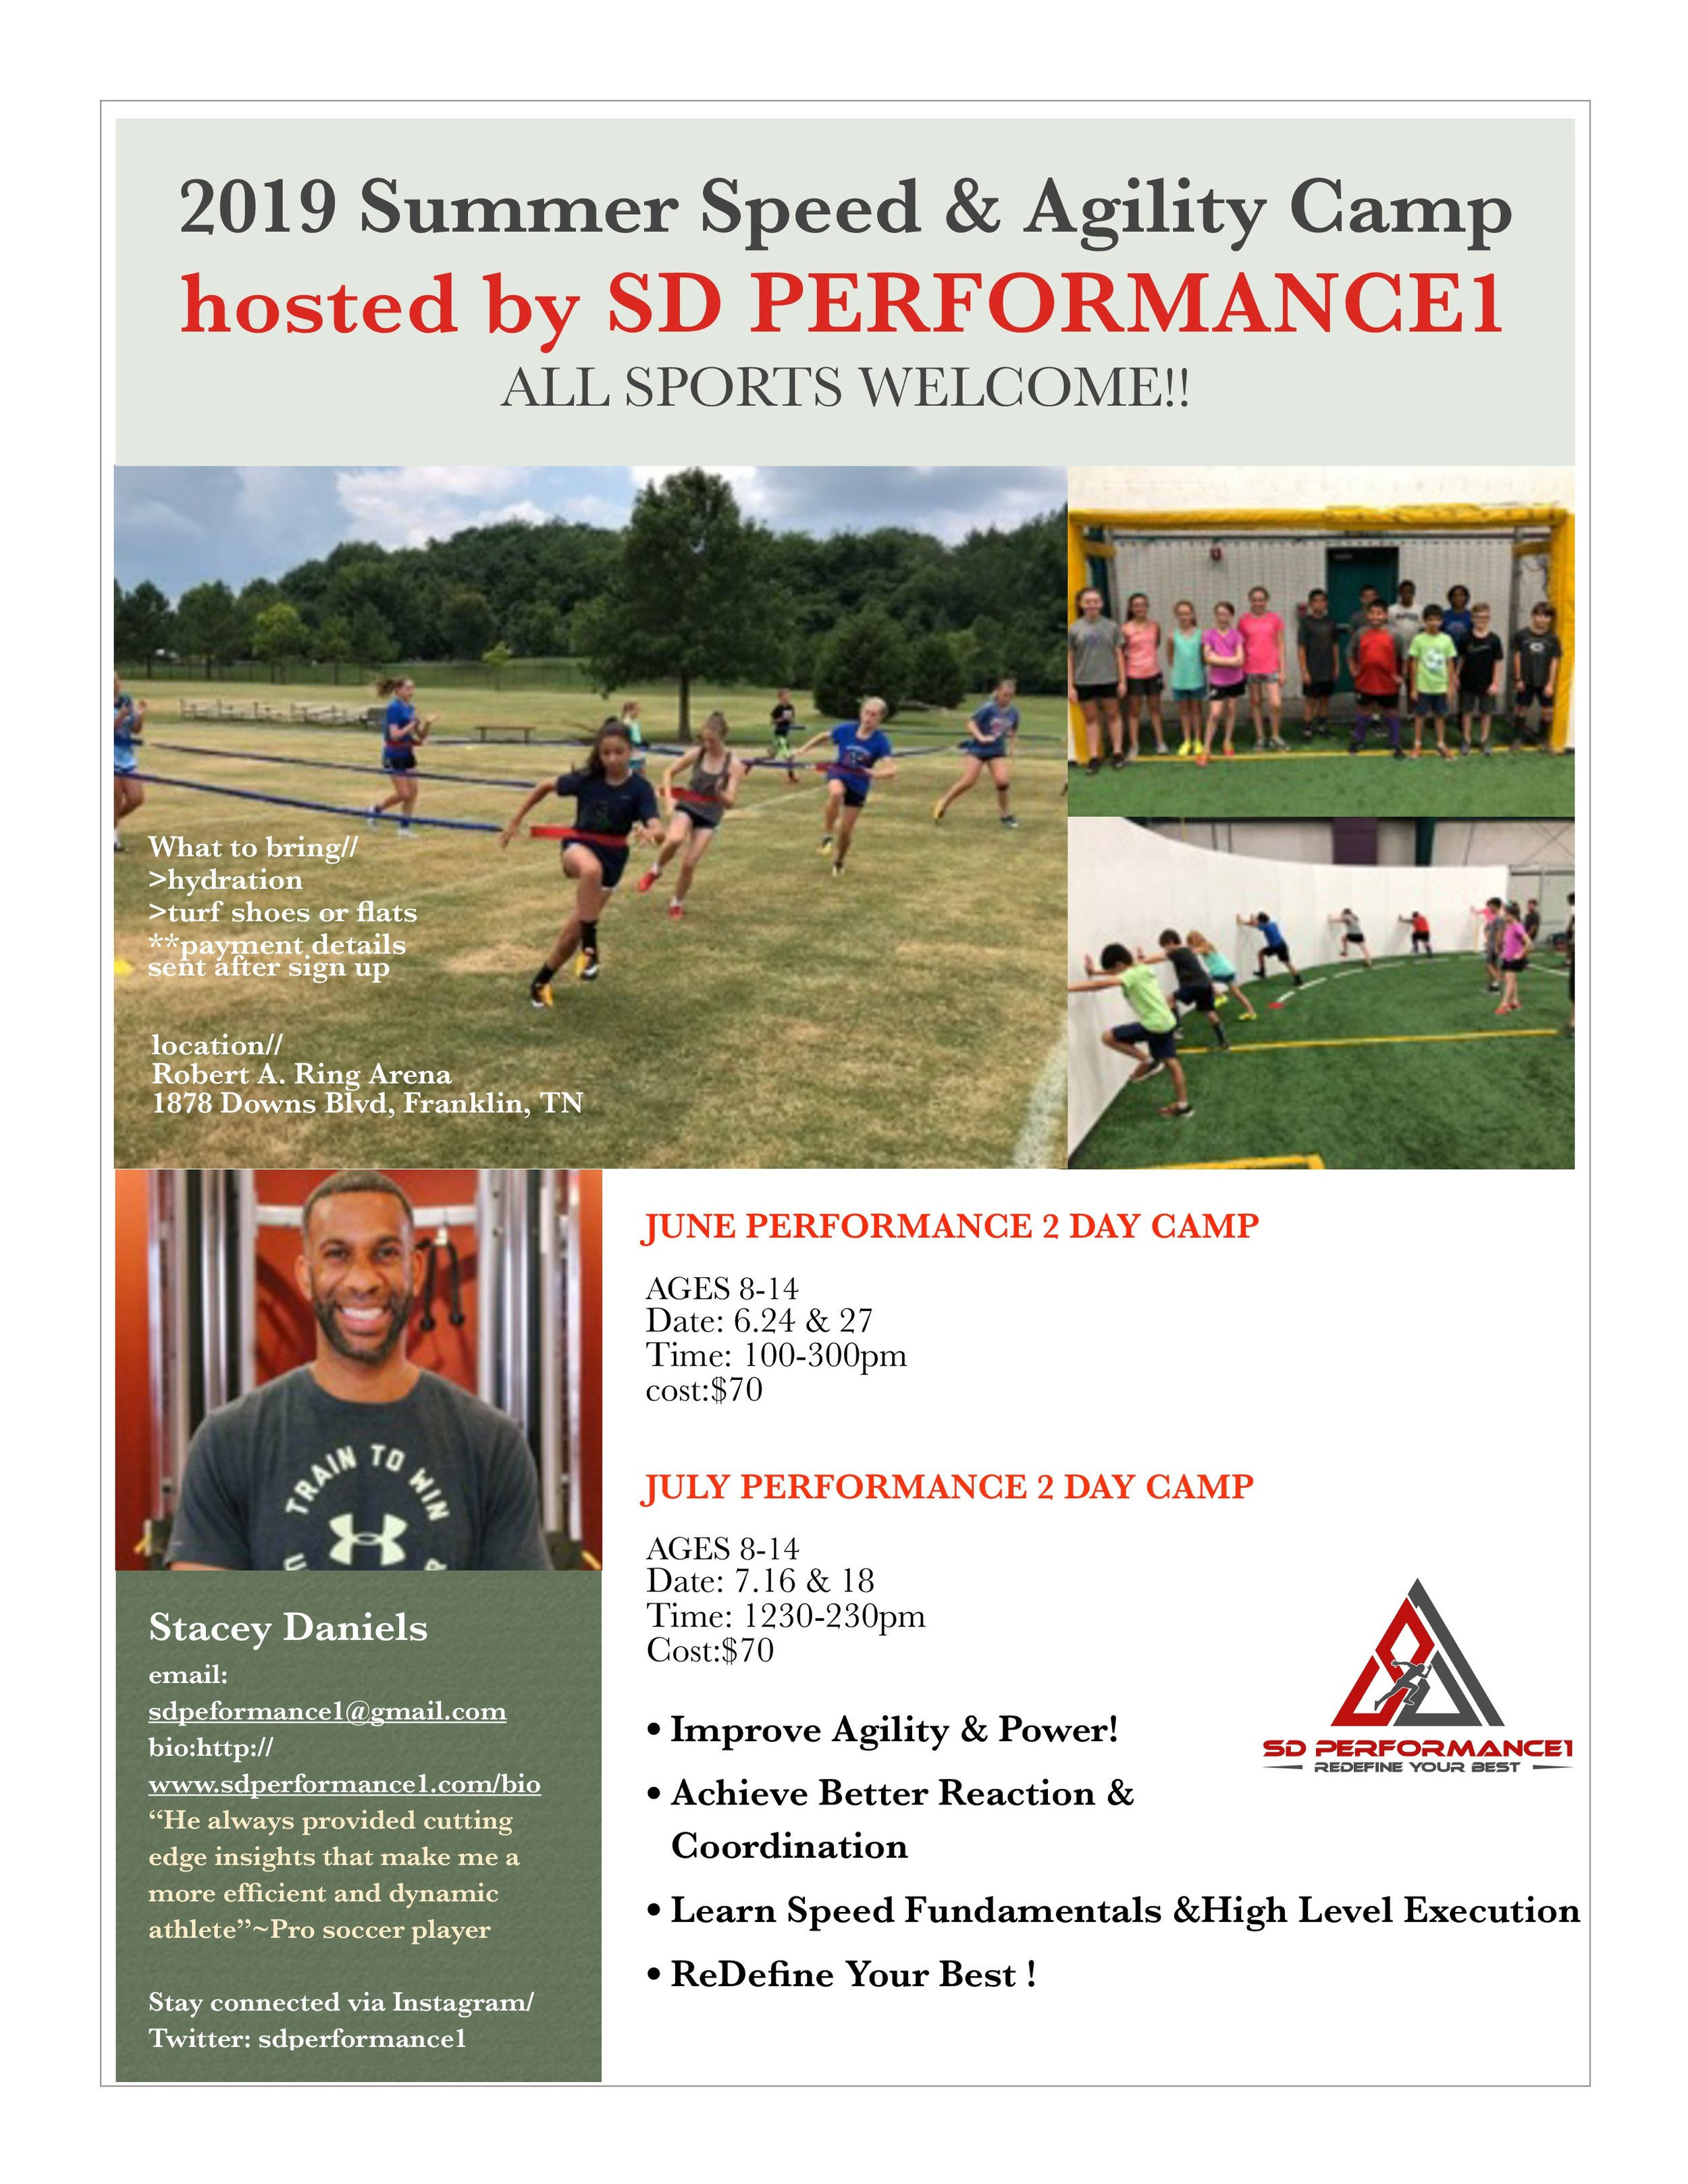 SD Performance1 - Stacey Daniels is hosting two speed camps this summer in the Nashville area! Camps are aimed at helping players to improve their agility and power while learning speed fundamentals. Click here to register for June camp and click here to register for July camp!